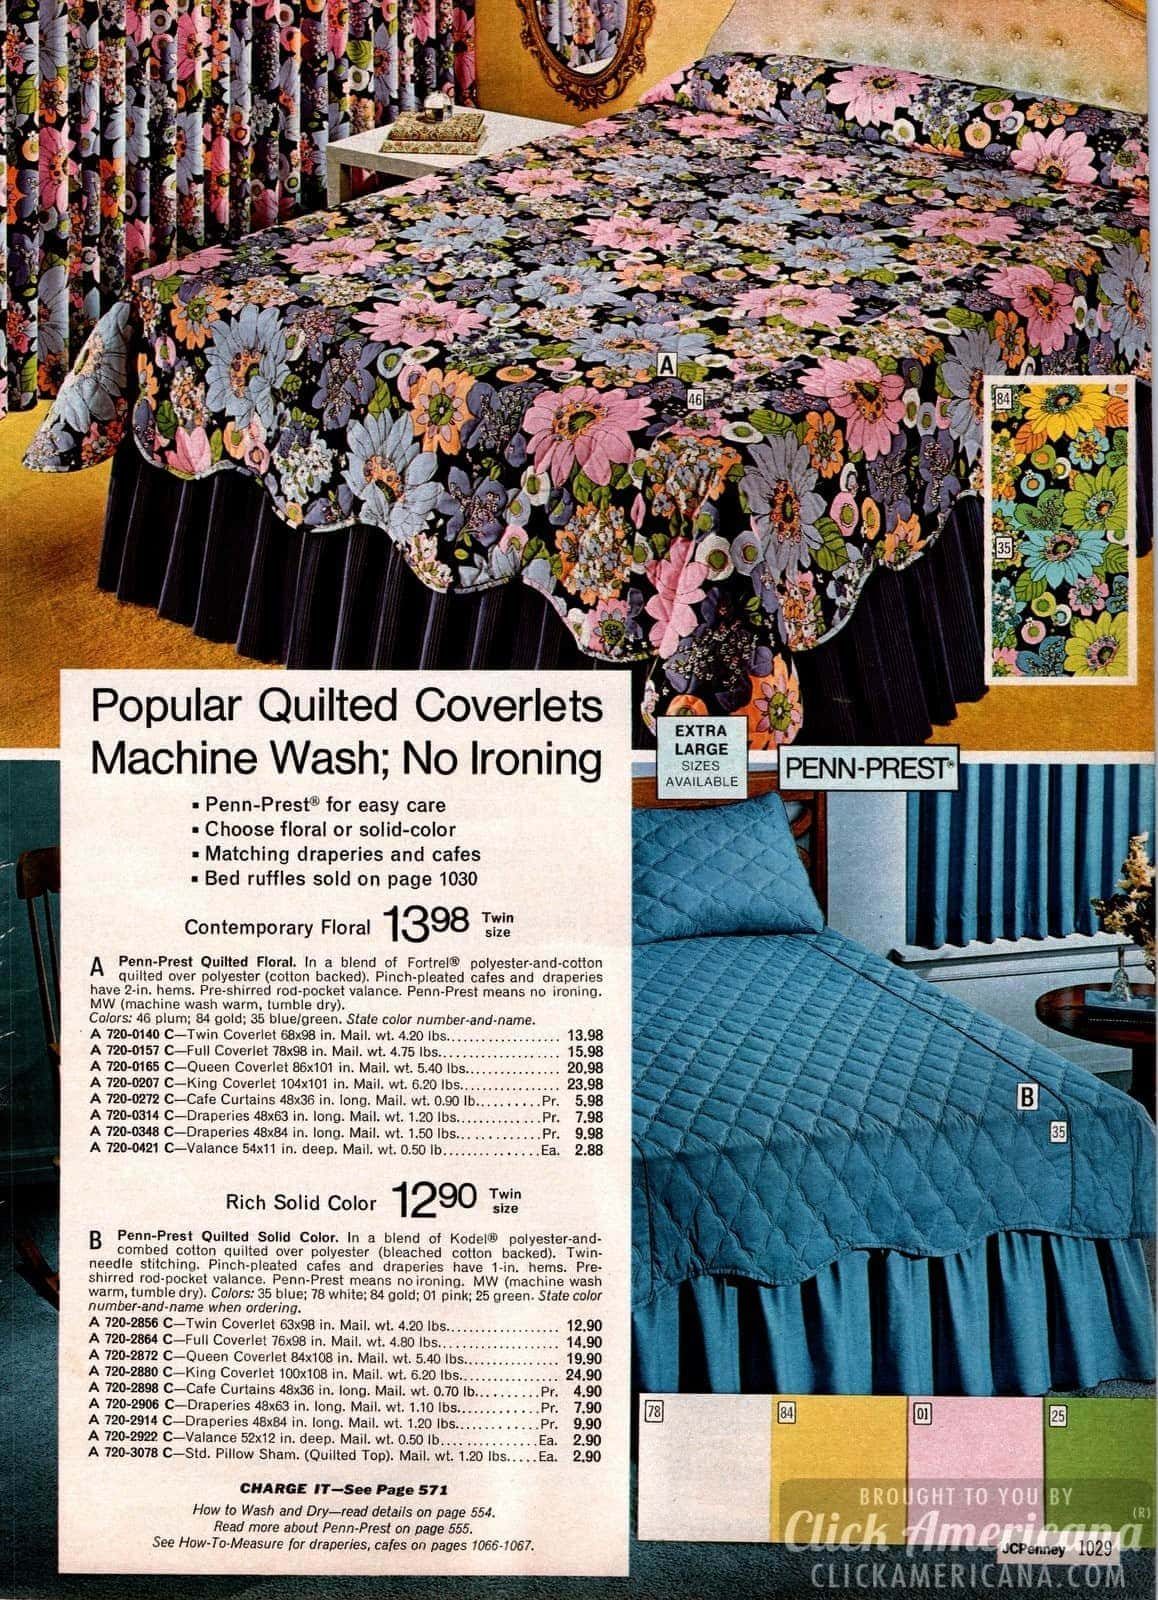 Floral and scalloped bedspreads